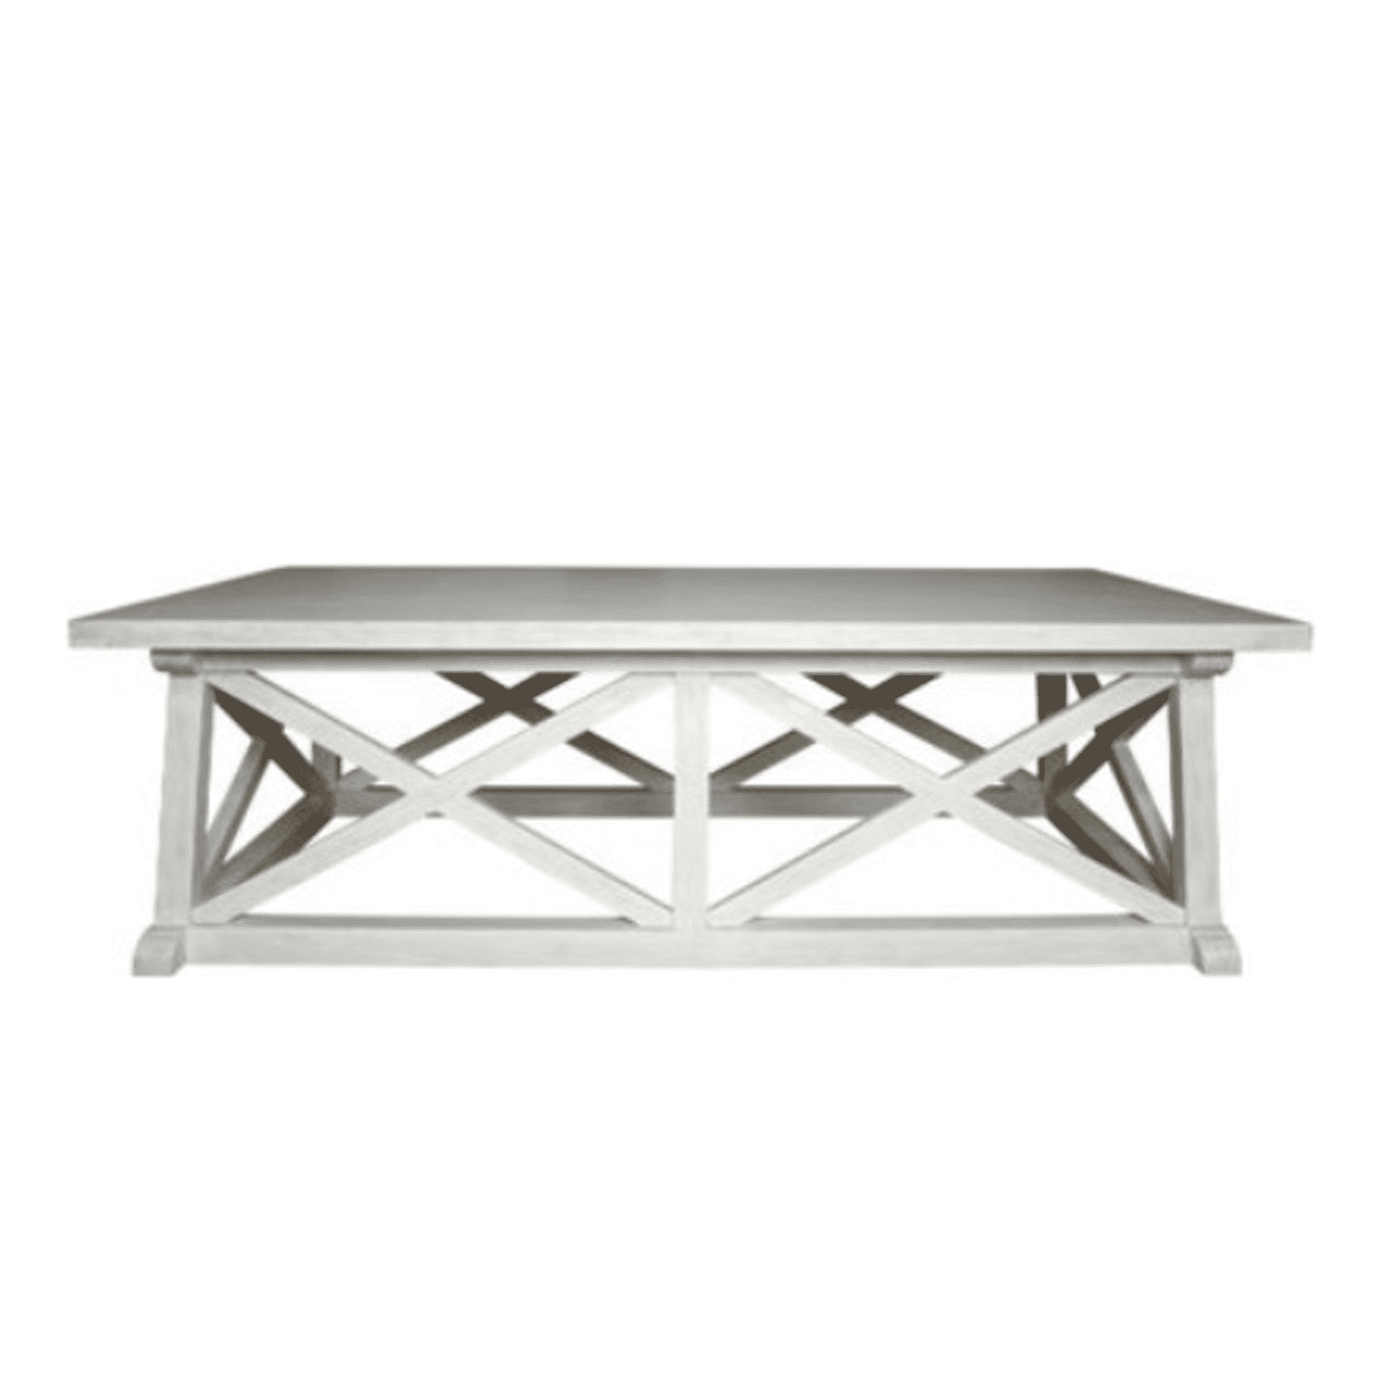 - Coffee Table White Washed Mahogany Wood SKU-OPGTAB121WH – Our